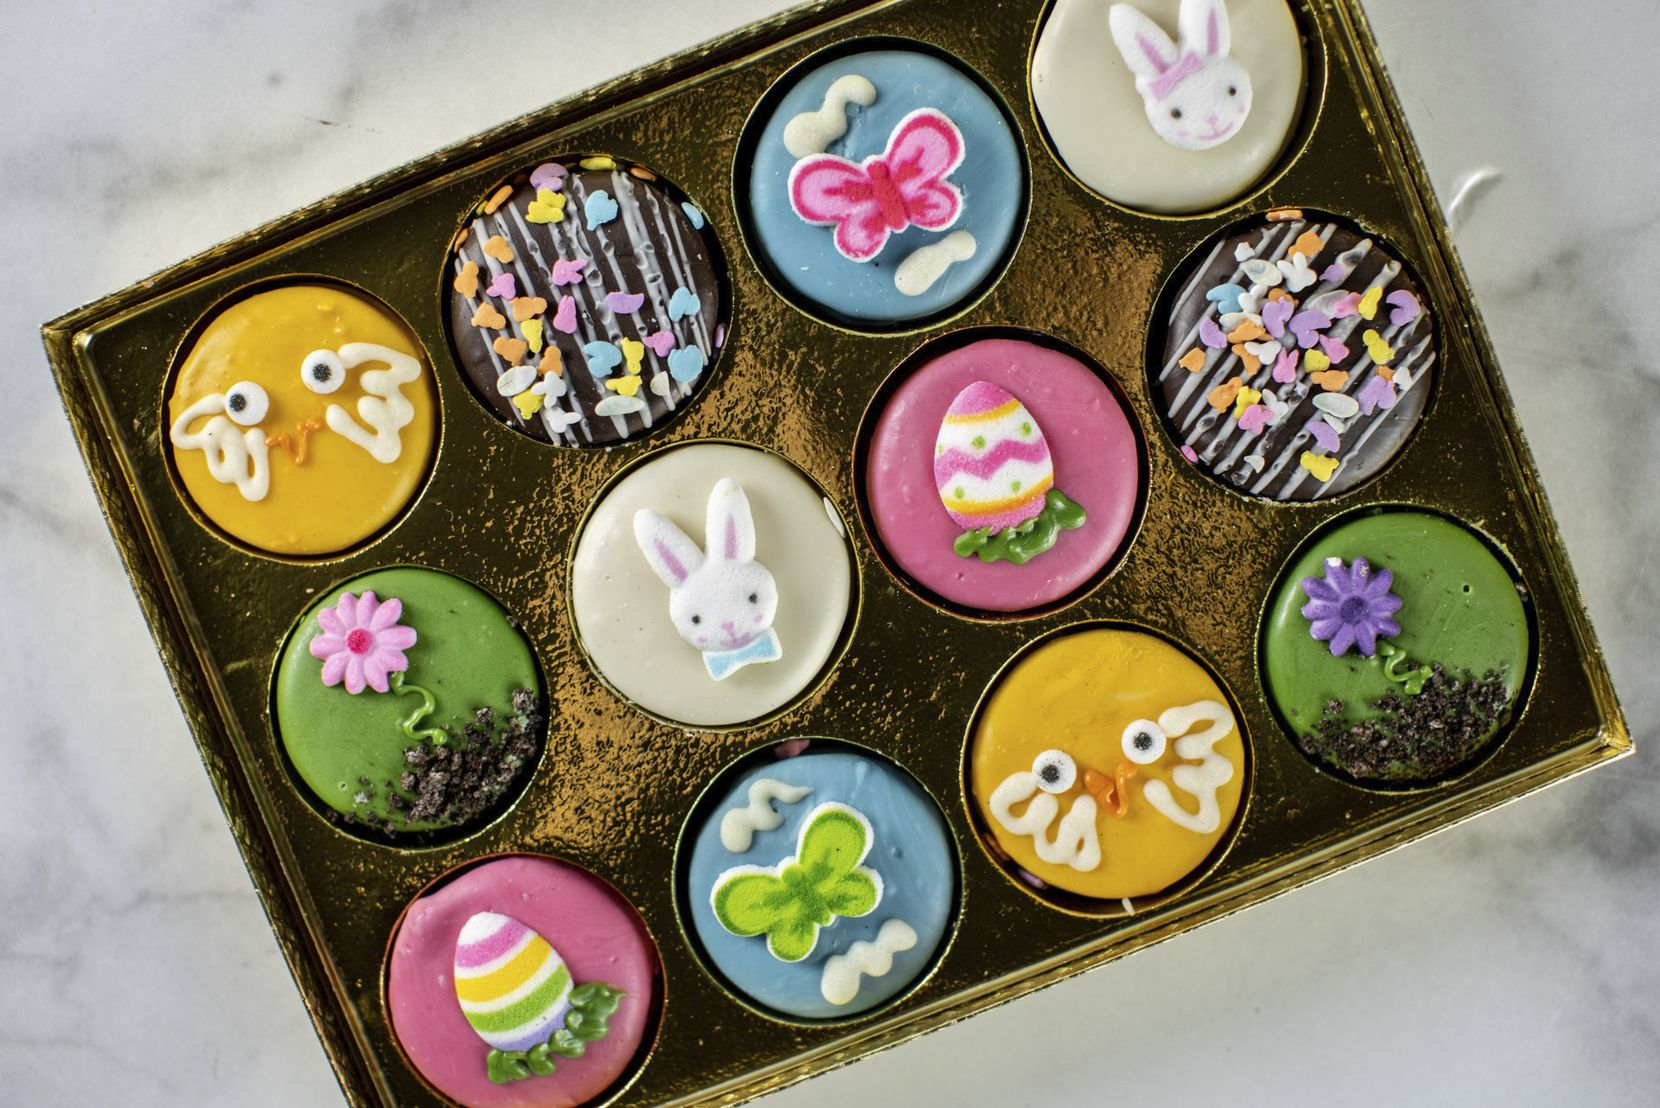 Eatzi's Market and Bakery's 2021 Easter and Passover menu includes sweets like Easter-themed chocolate-covered Oreos.